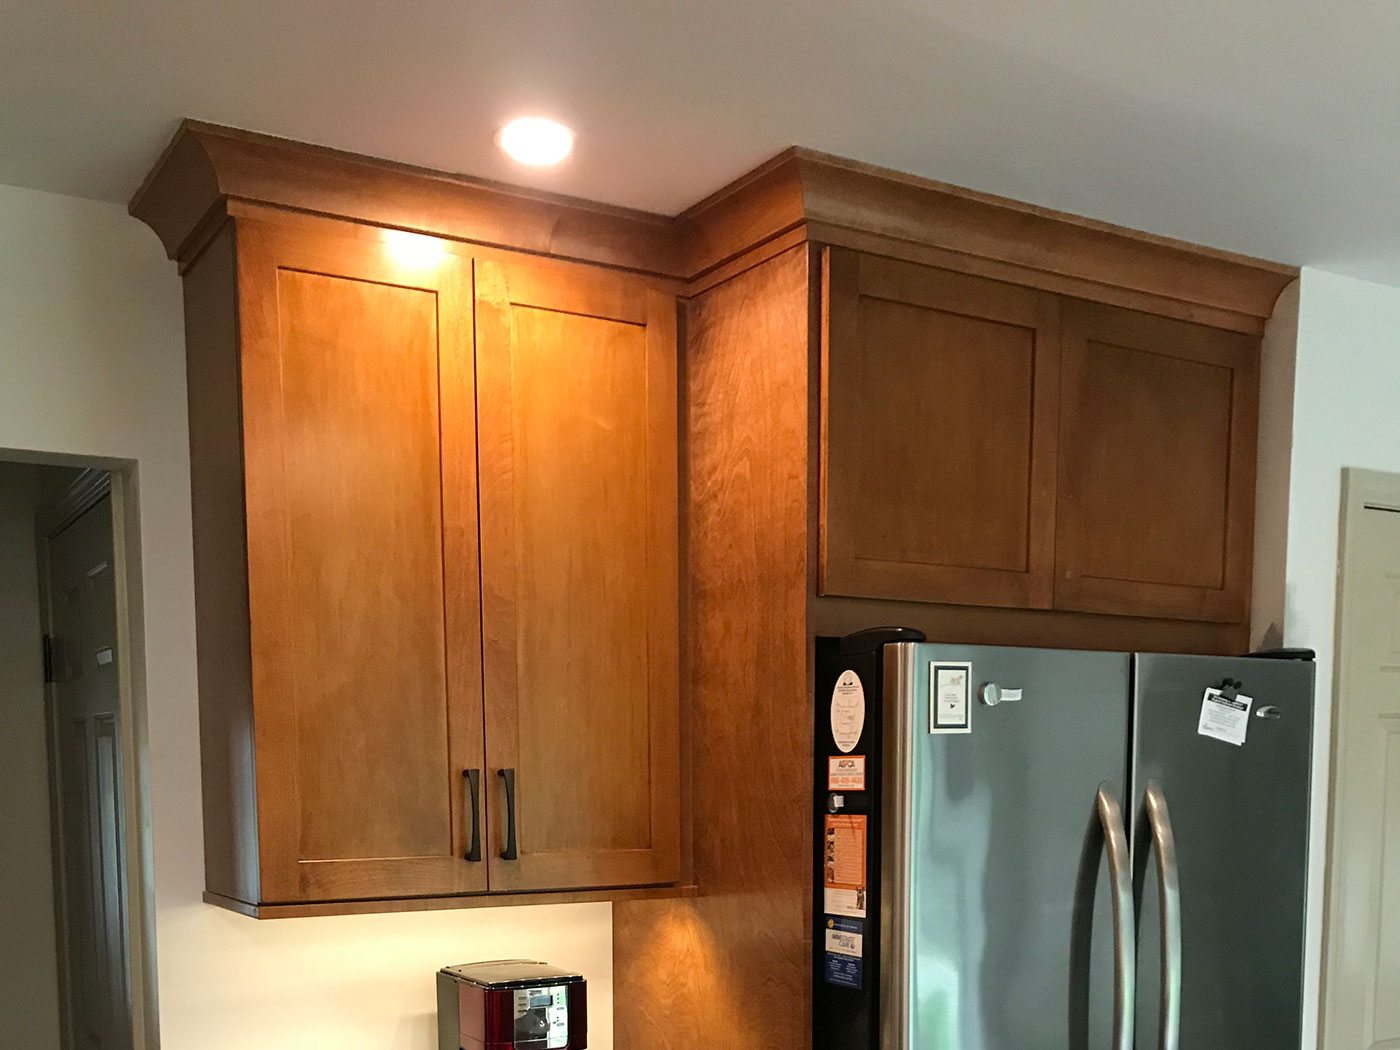 Custom Kitchen Cabinets Maple - Craftworks Custom Cabinetry - Rochester, NY